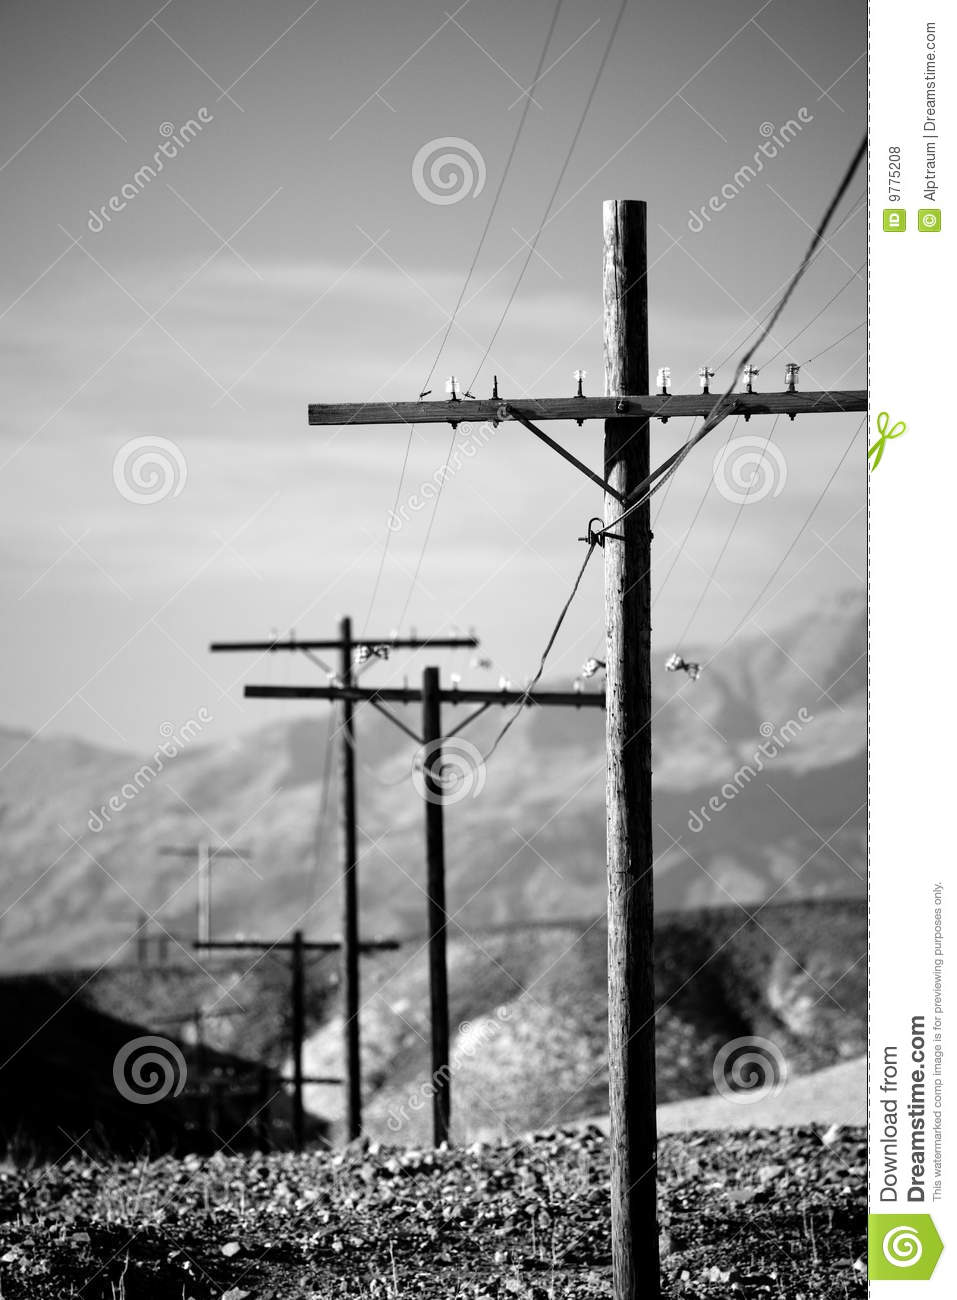 Electric Poles Power Lines : Power lines utility poles b w stock photo image